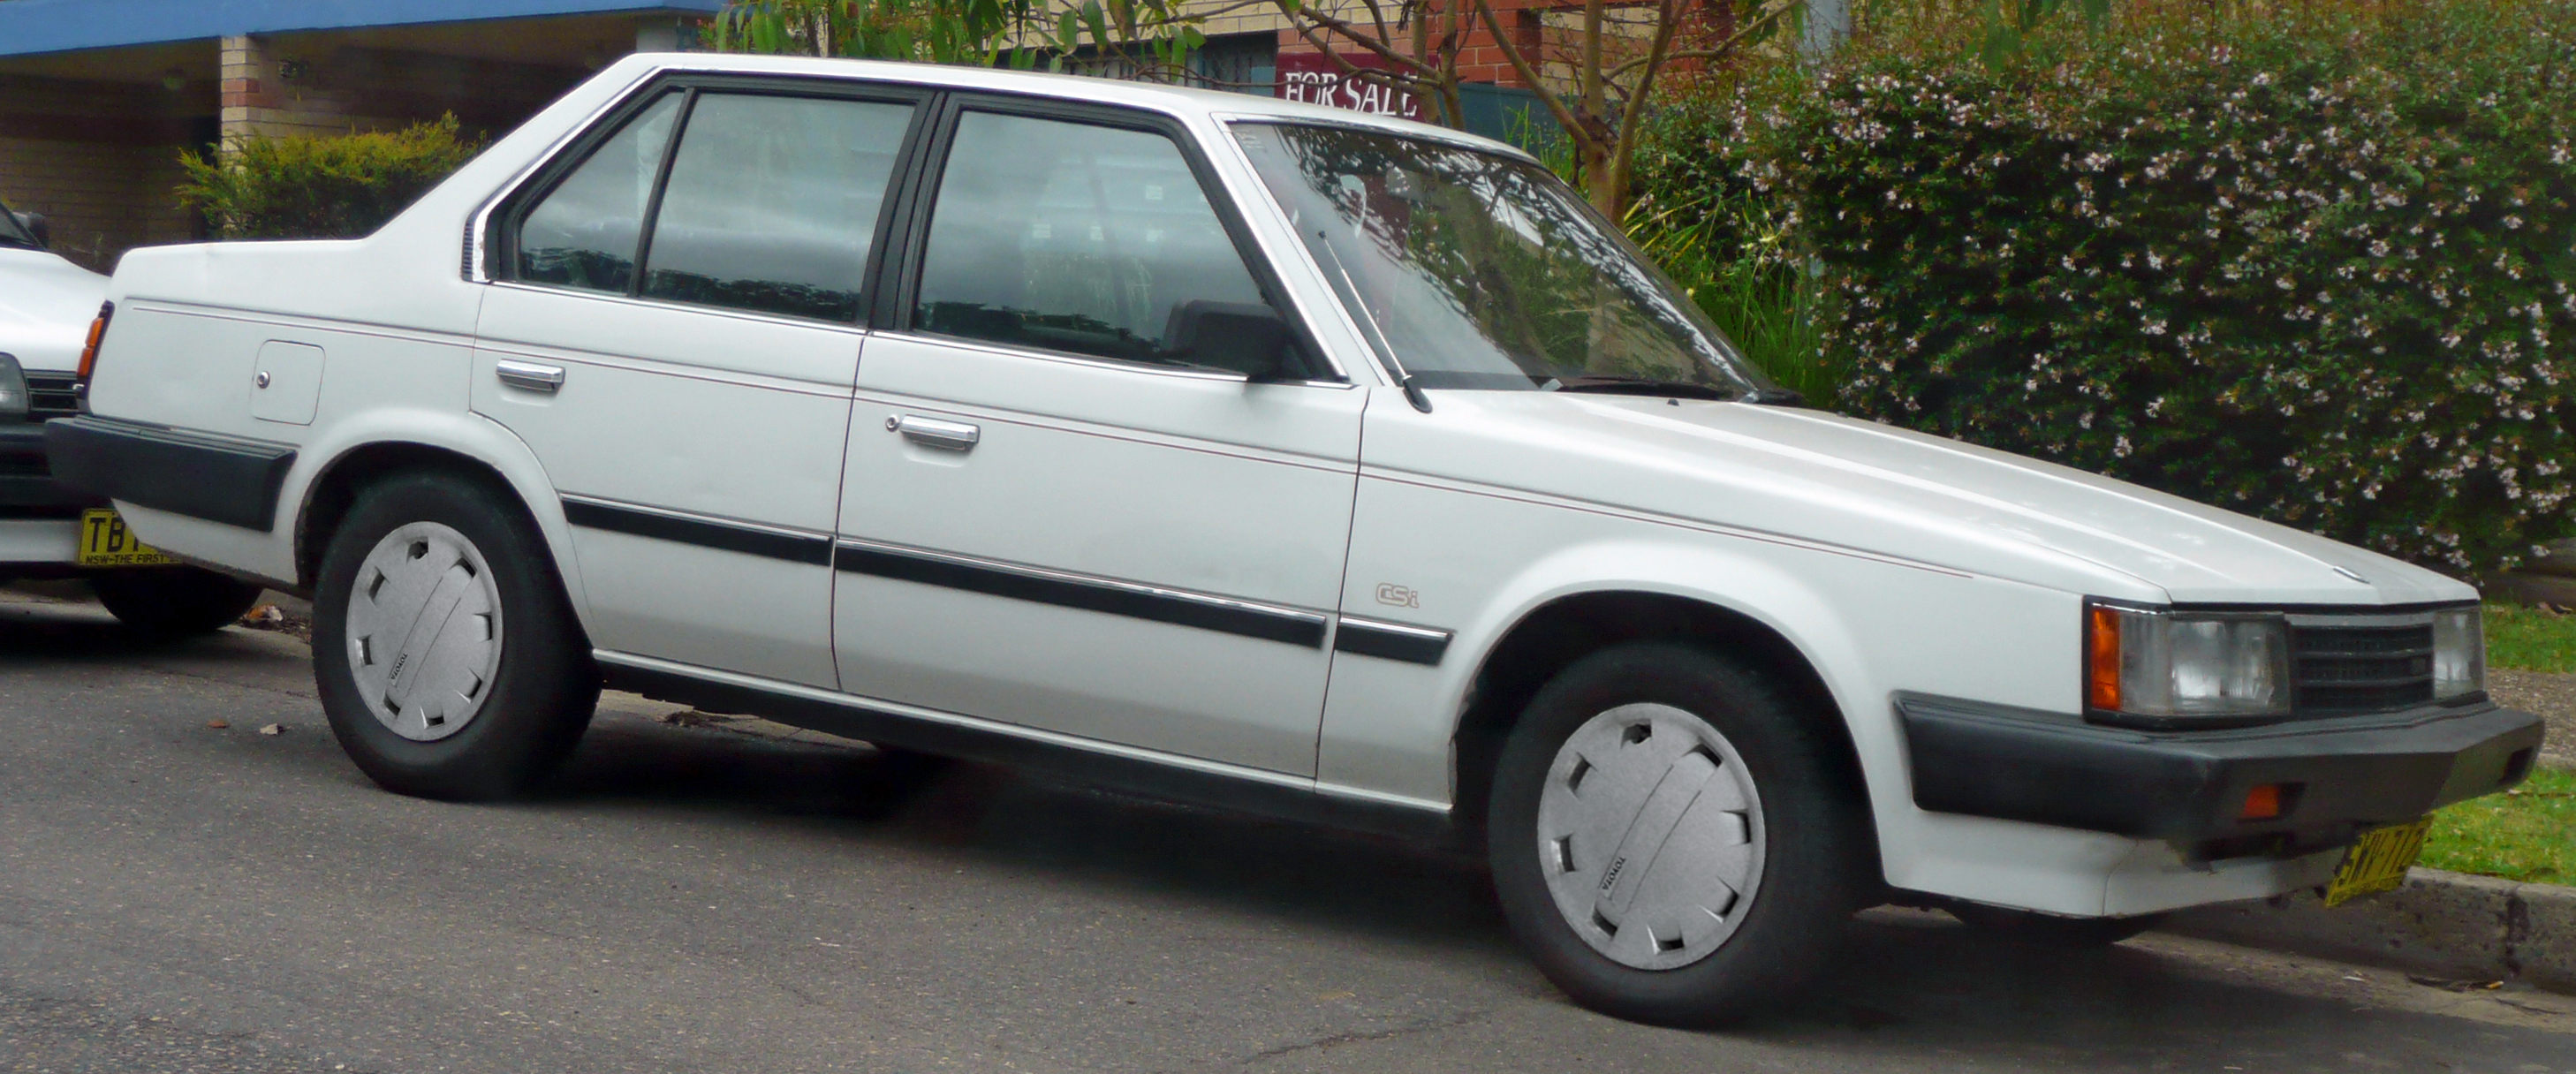 https://upload.wikimedia.org/wikipedia/commons/a/ab/1986_Toyota_Corona_%28RT142%29_CSi_sedan_%282009-01-03%29.jpg